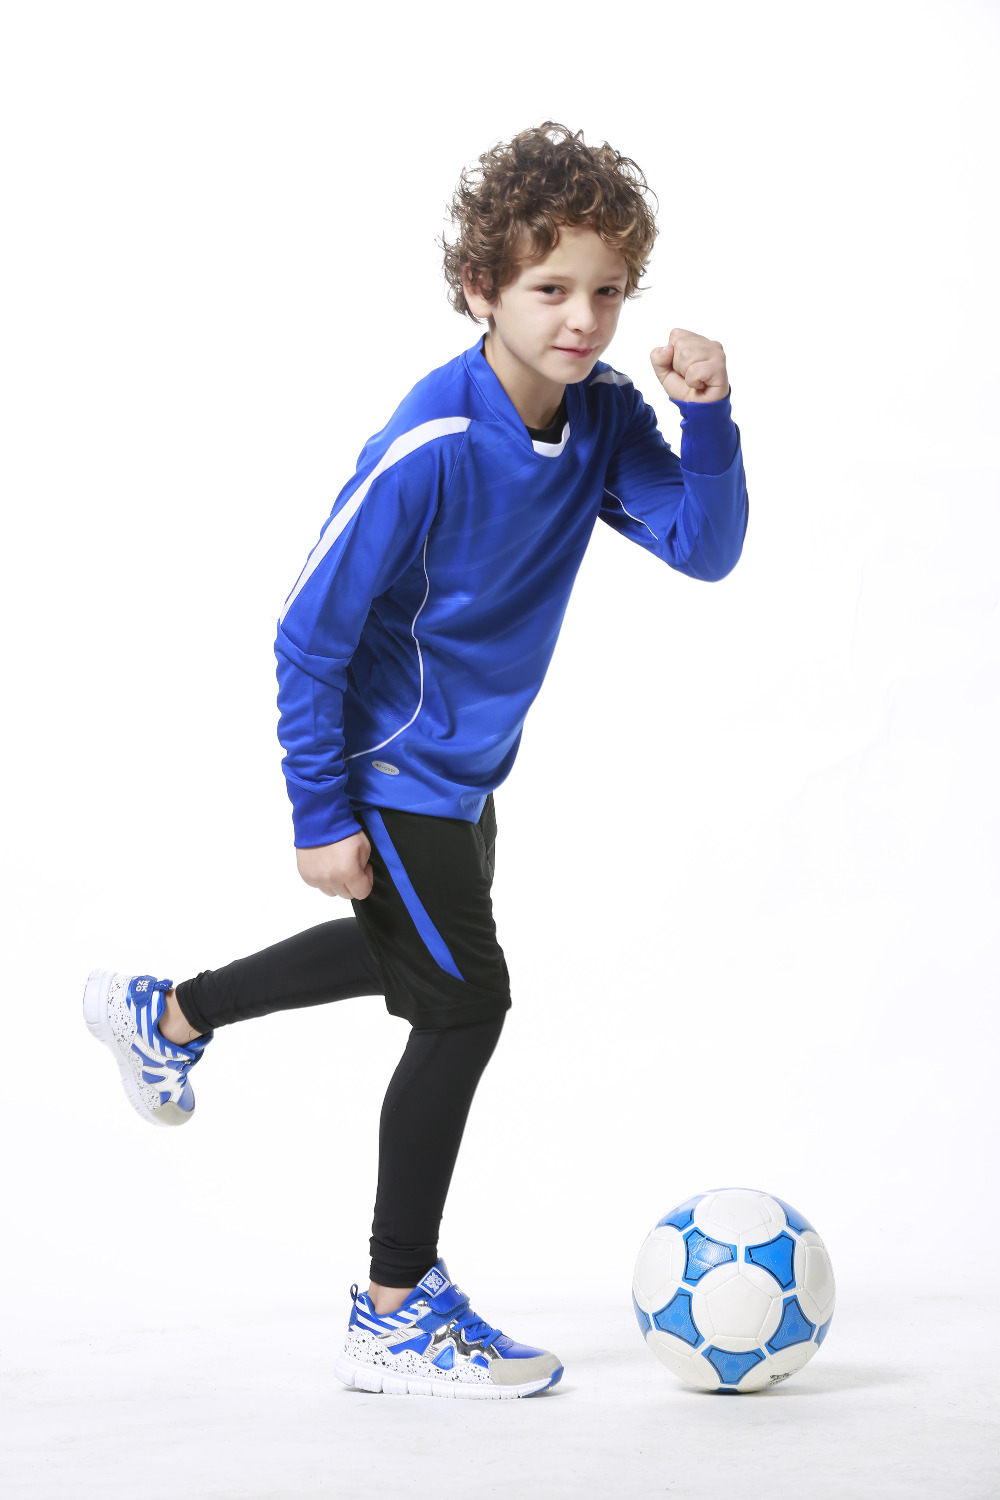 SoccerPro is ready for your soccer season. For the soccer fan or soccer player we have the gear you need! Find the best soccer cleats, soccer balls and soccer equipment from the biggest brands like Nike, adidas, Puma and Kwikgoal.